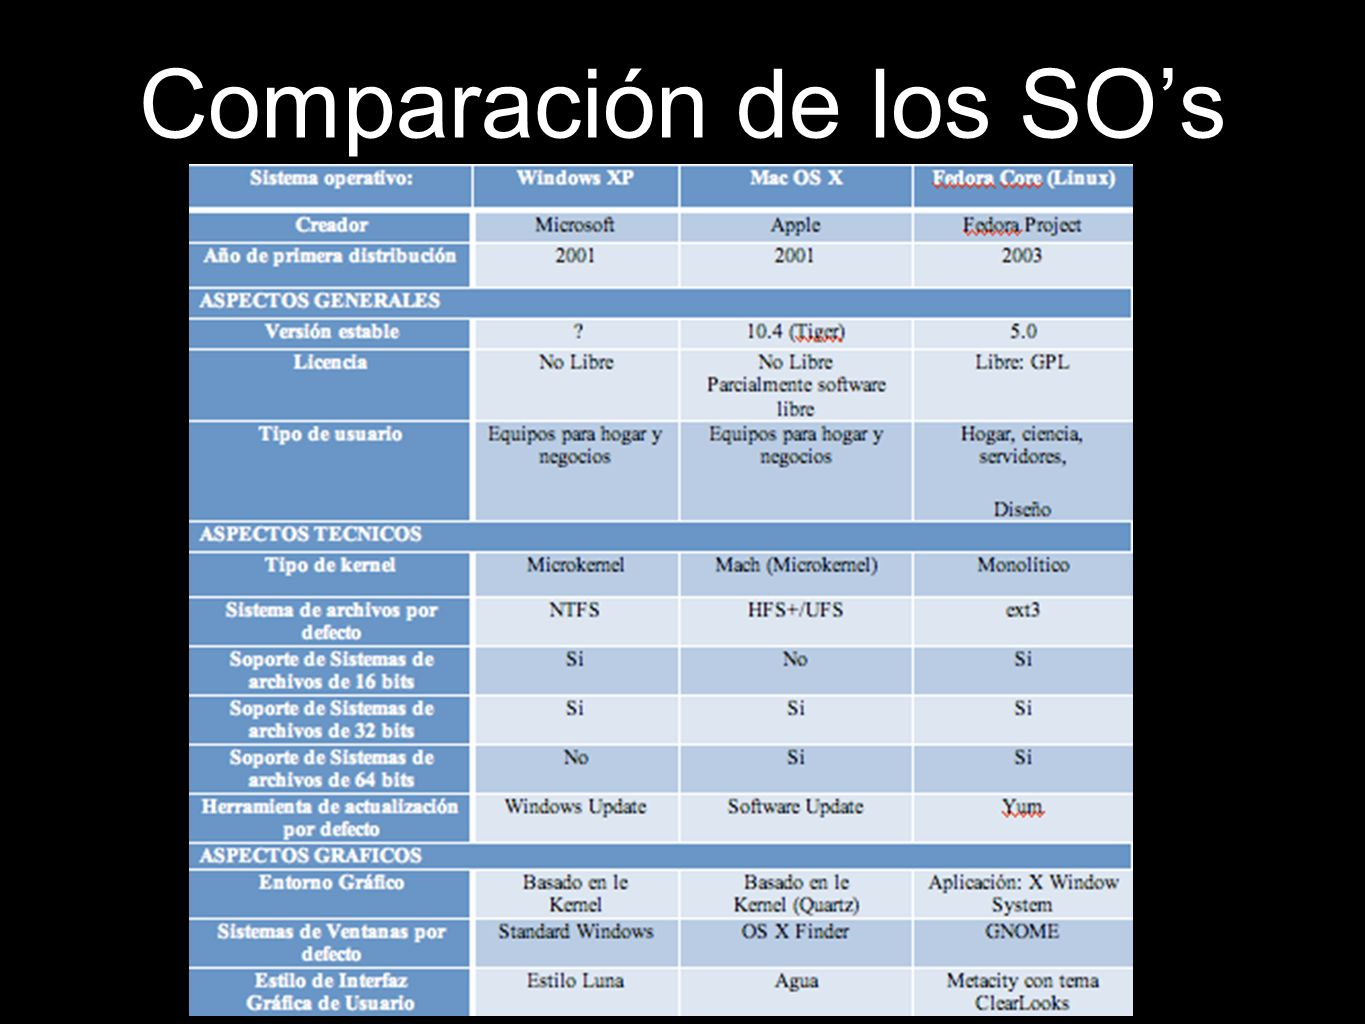 Comparación de los SO's